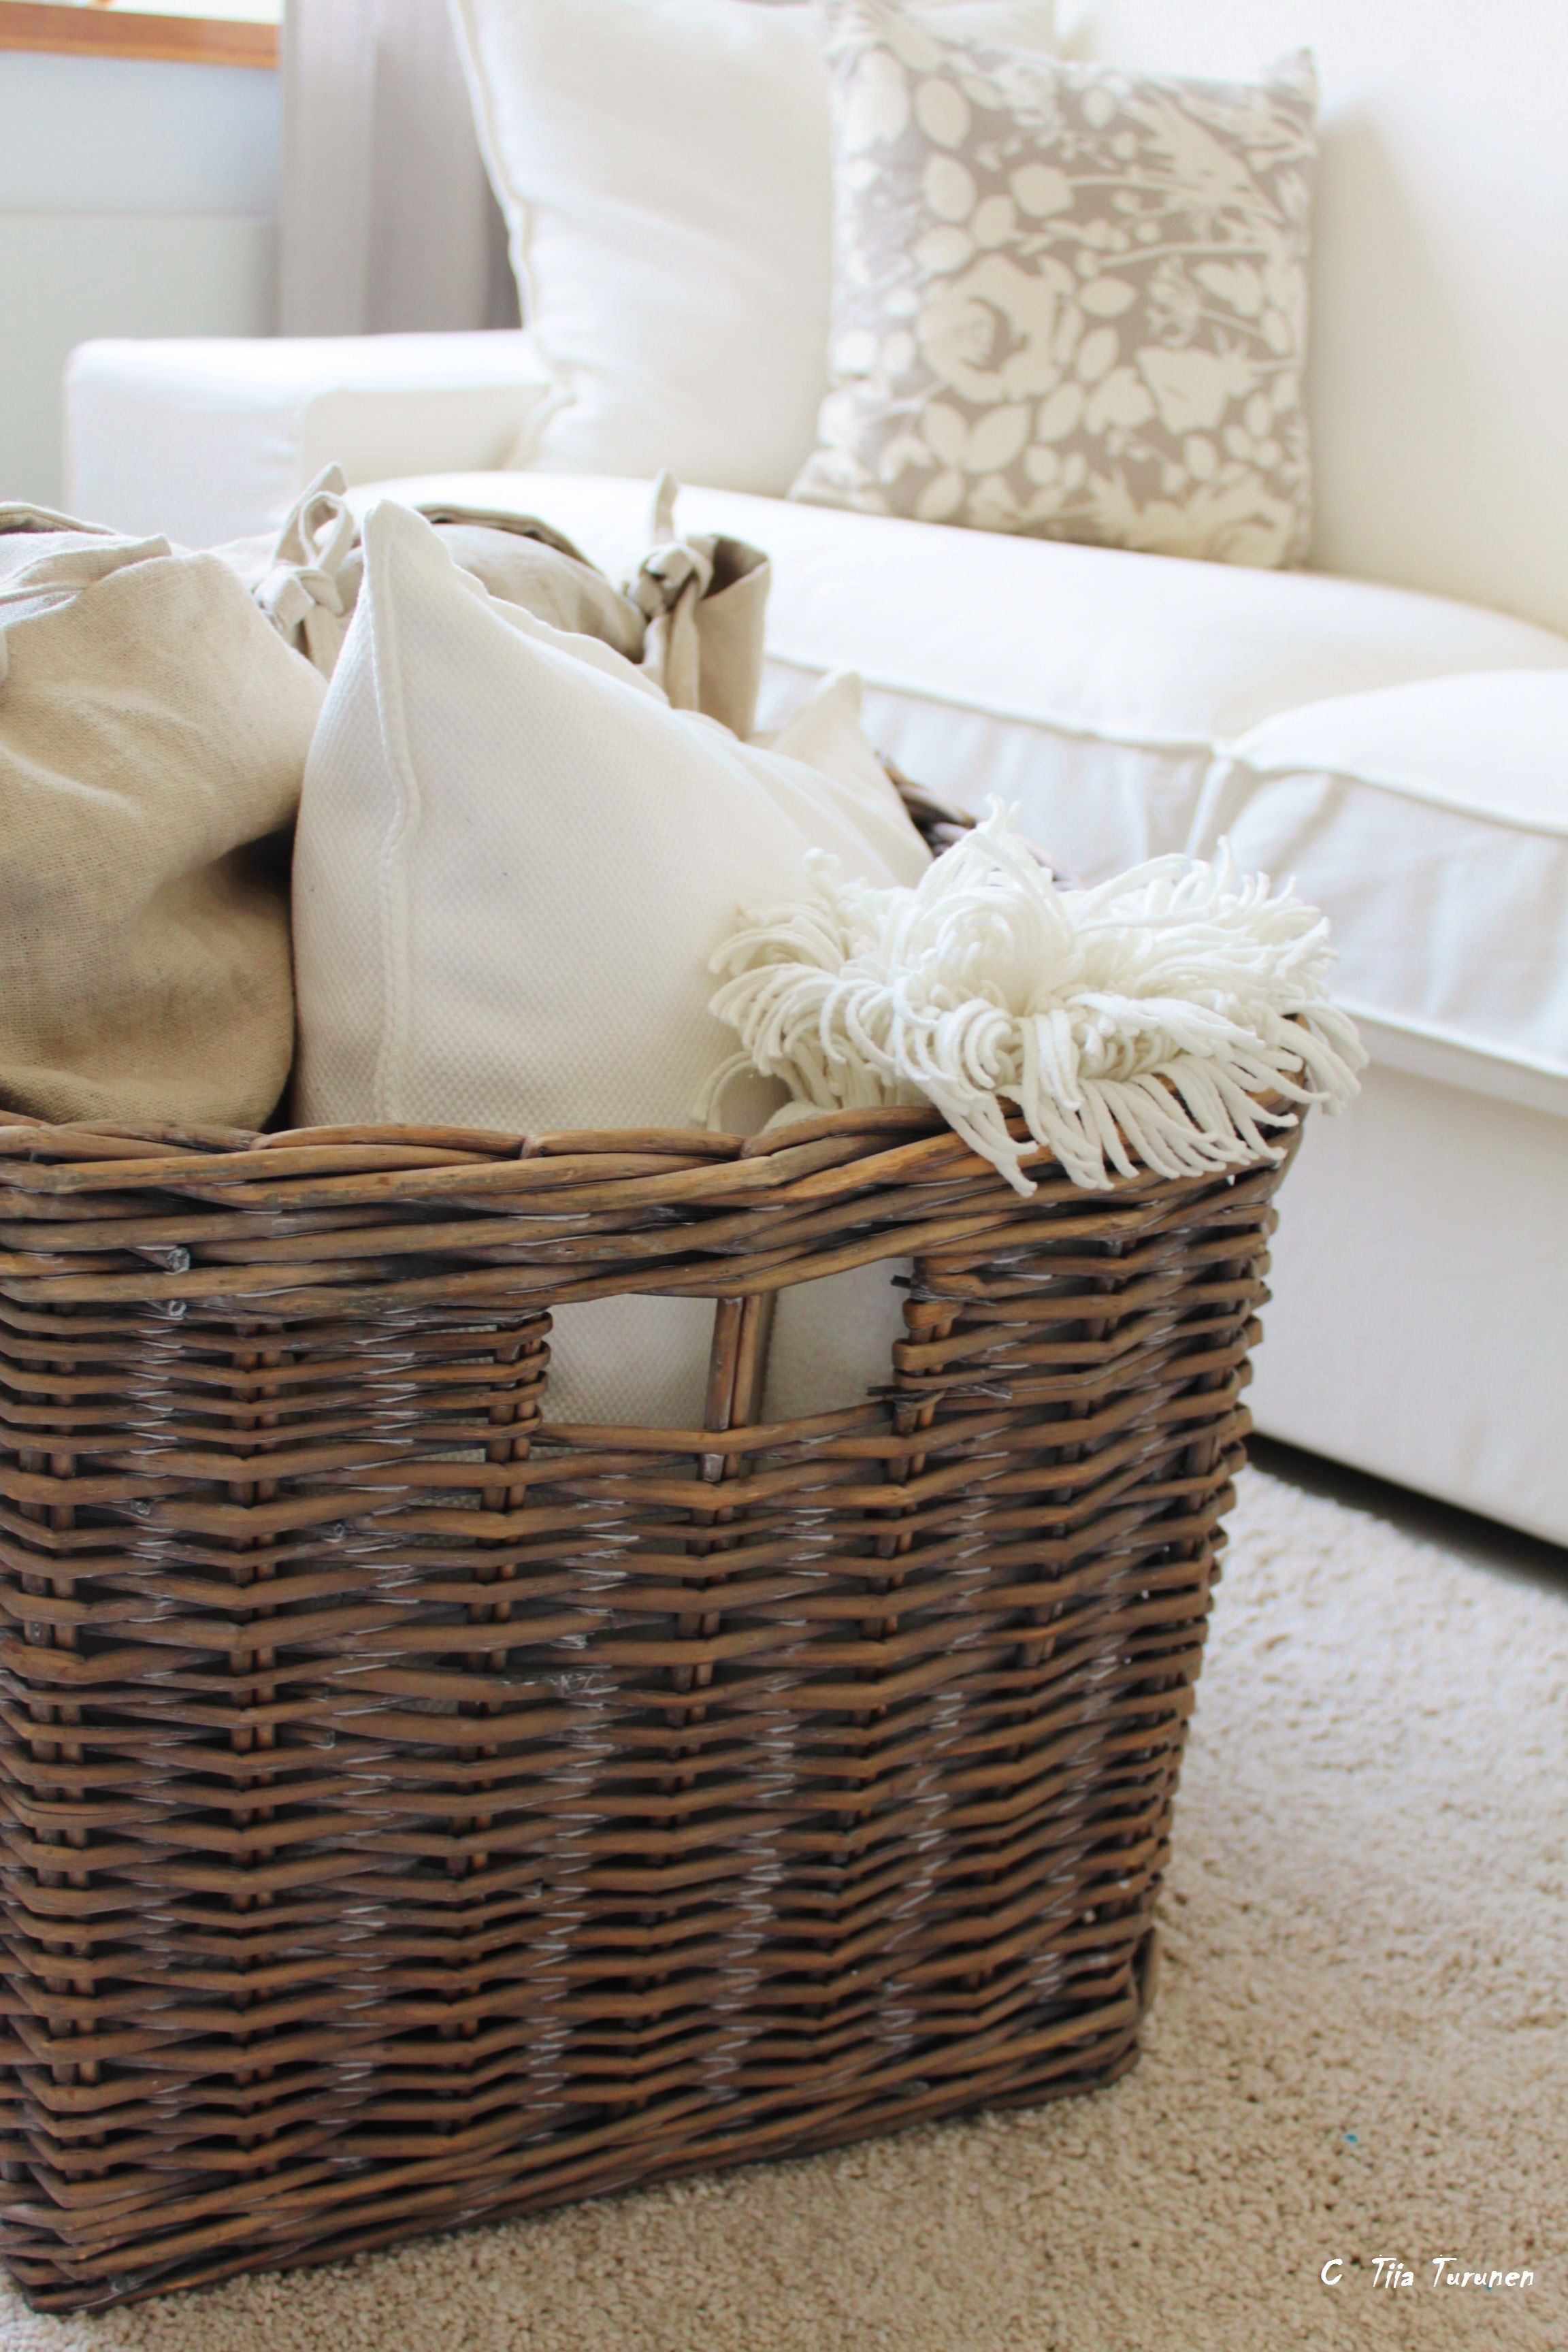 Home Decor Baskets Living Room This Is Nice Extra Pillows And Blankets For When Youre Feeling